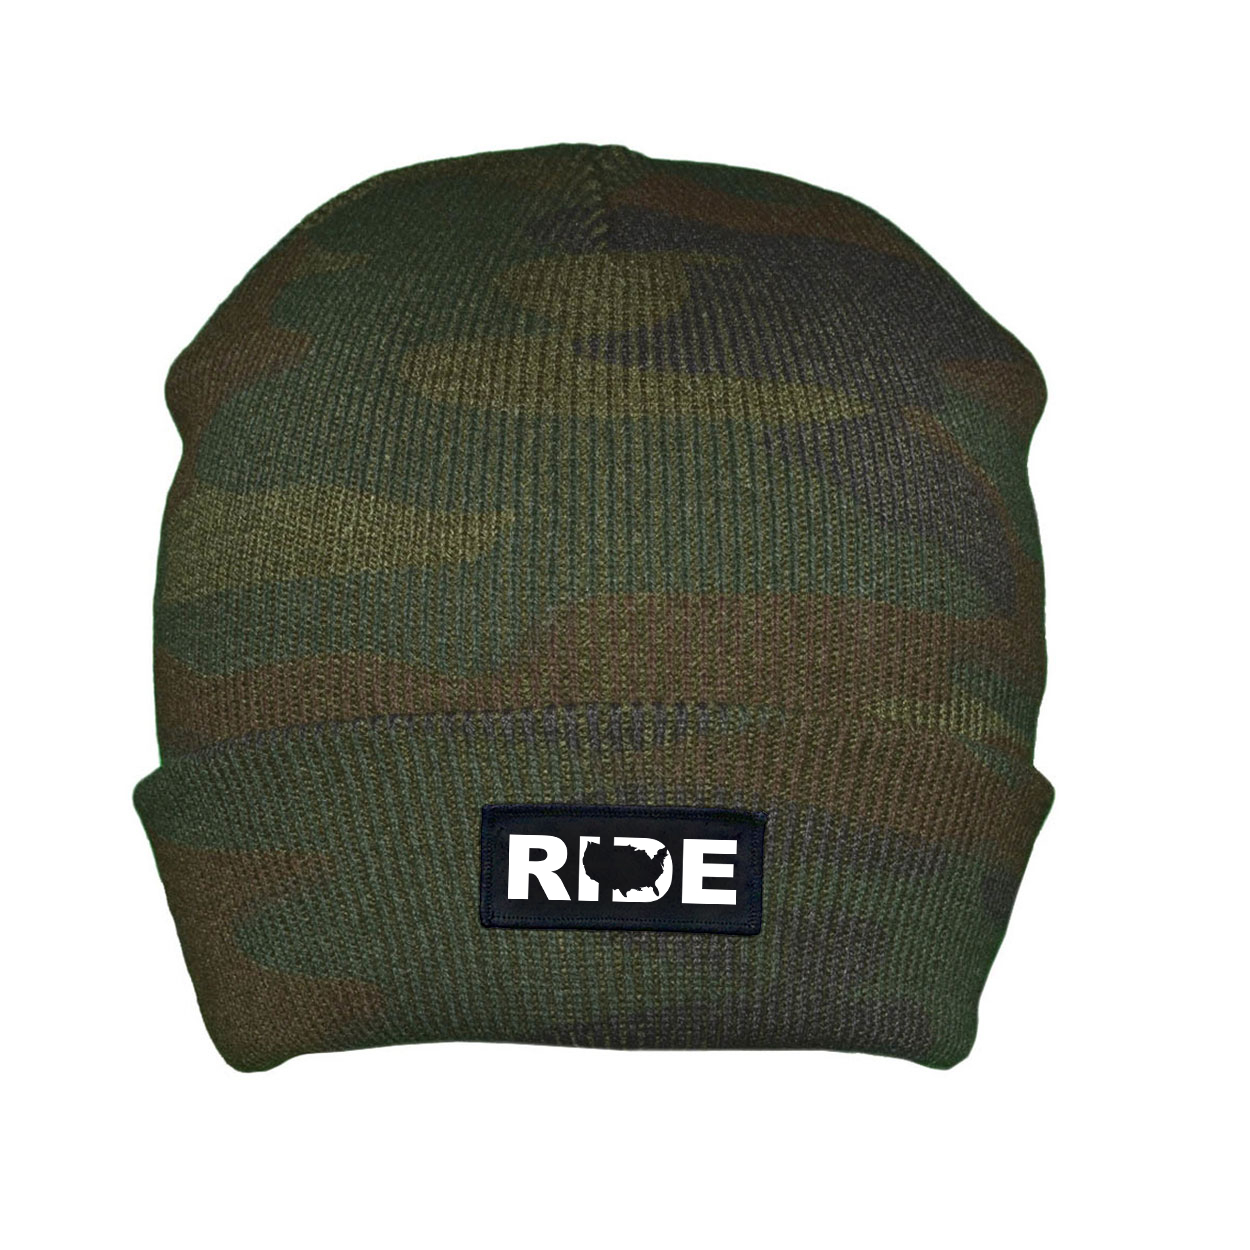 Ride United States Night Out Woven Patch Roll Up Skully Beanie Camo (White Logo)